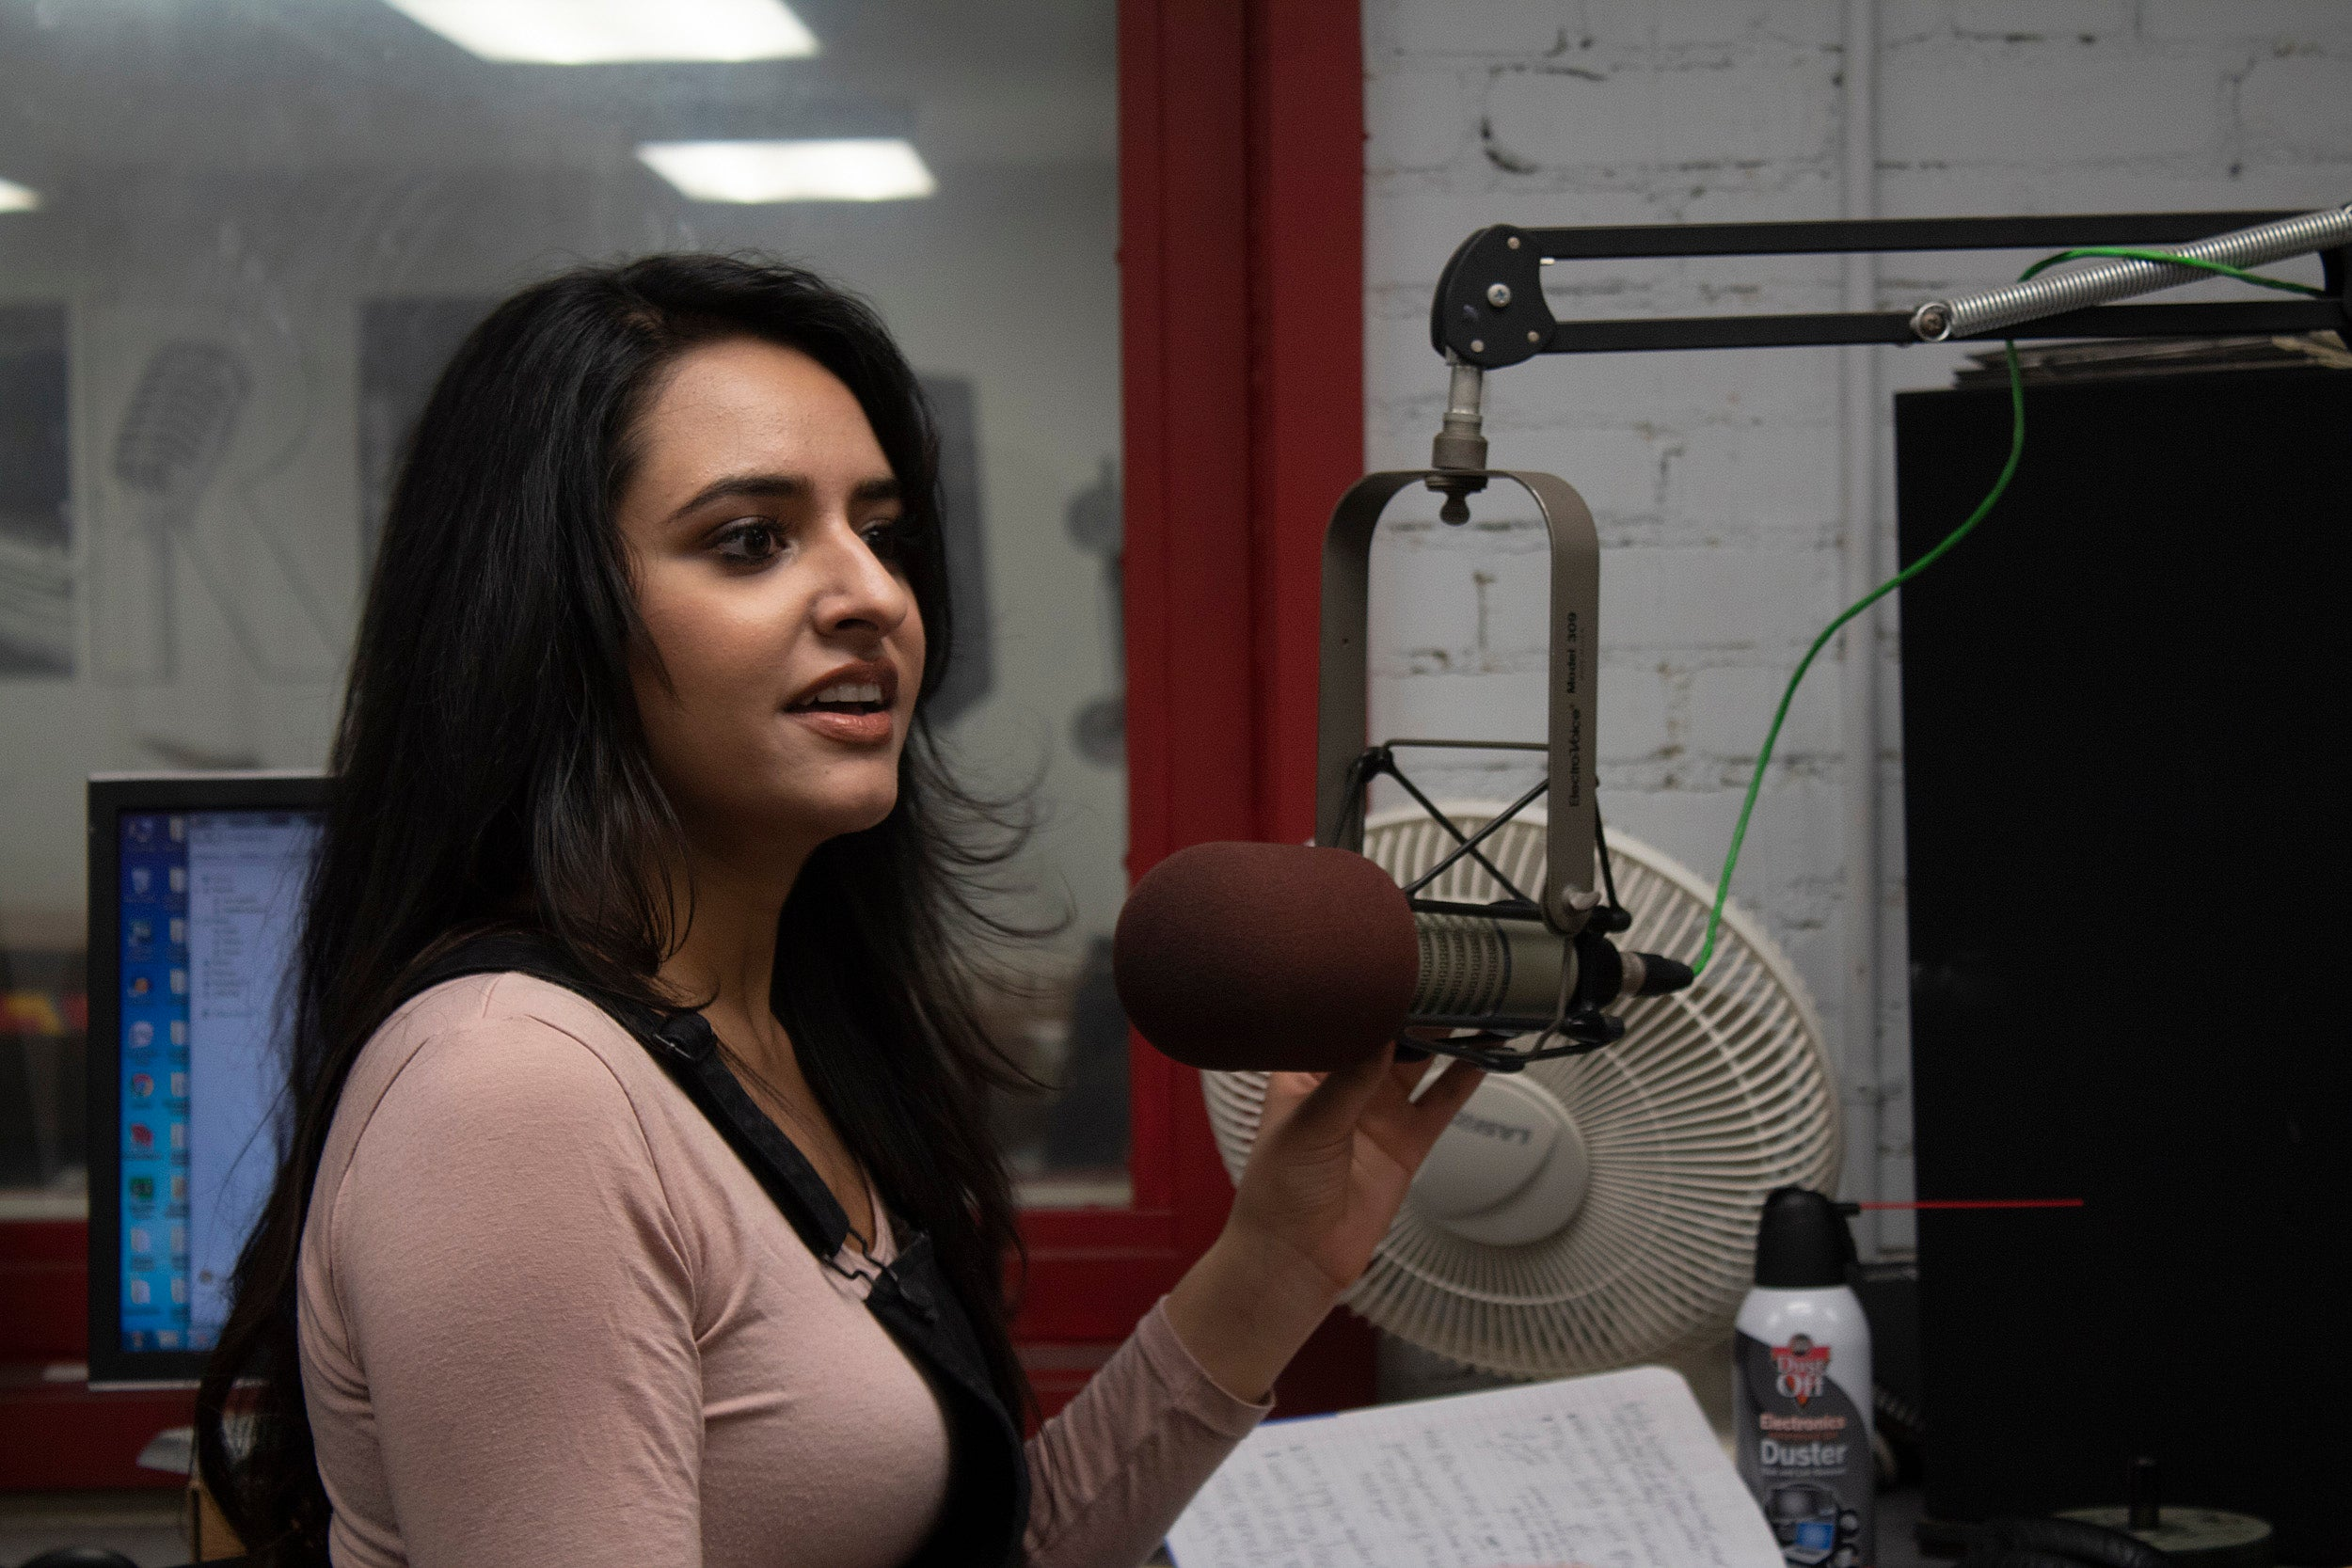 At WHRB, Henna Hundal clues listeners in on current events and trends